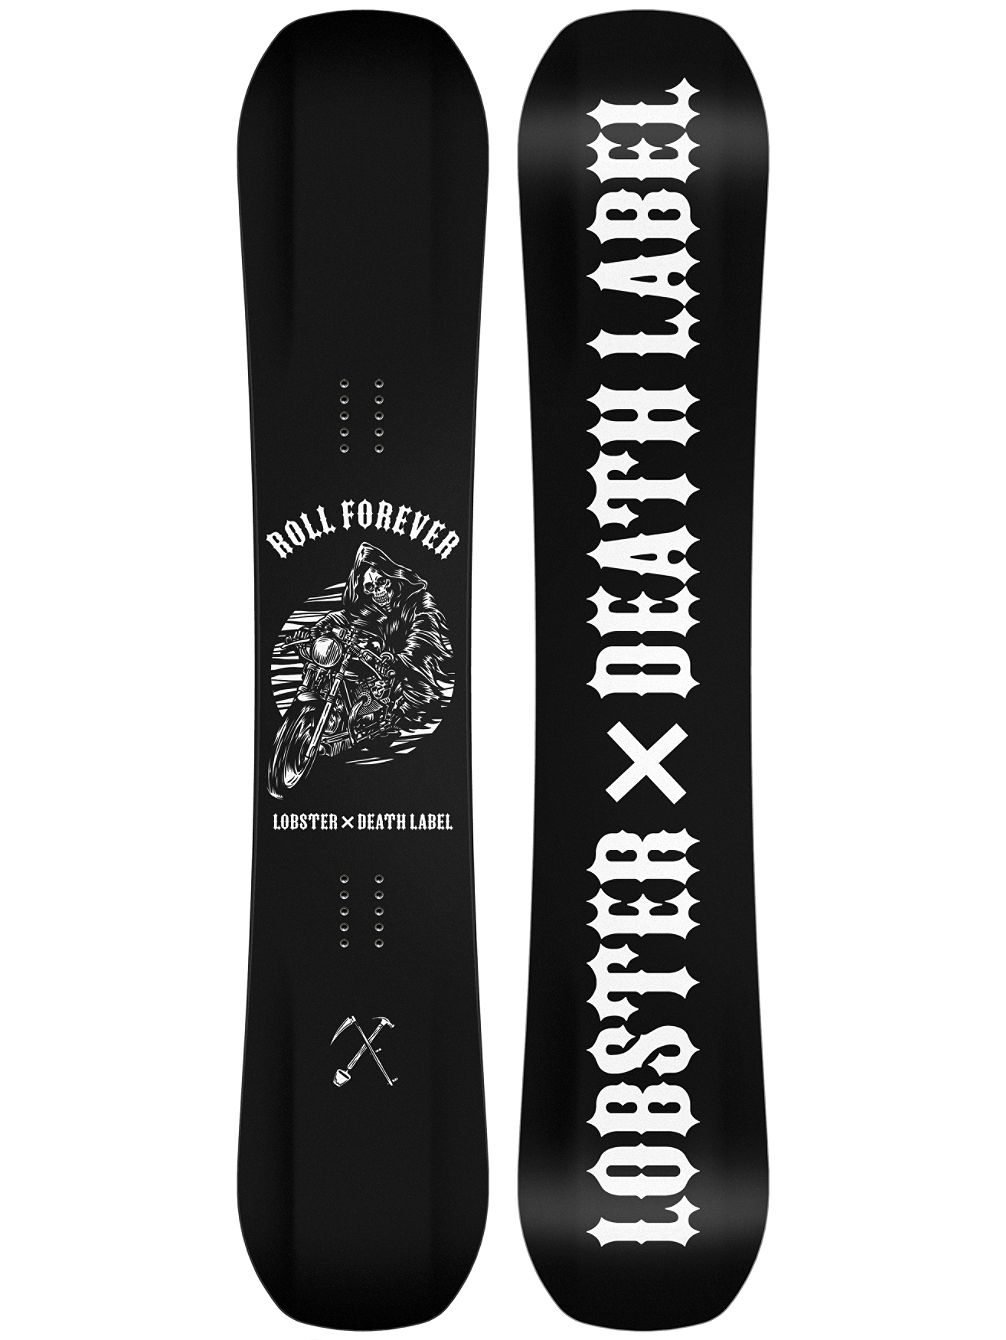 lobster-x-death-label-155-2017